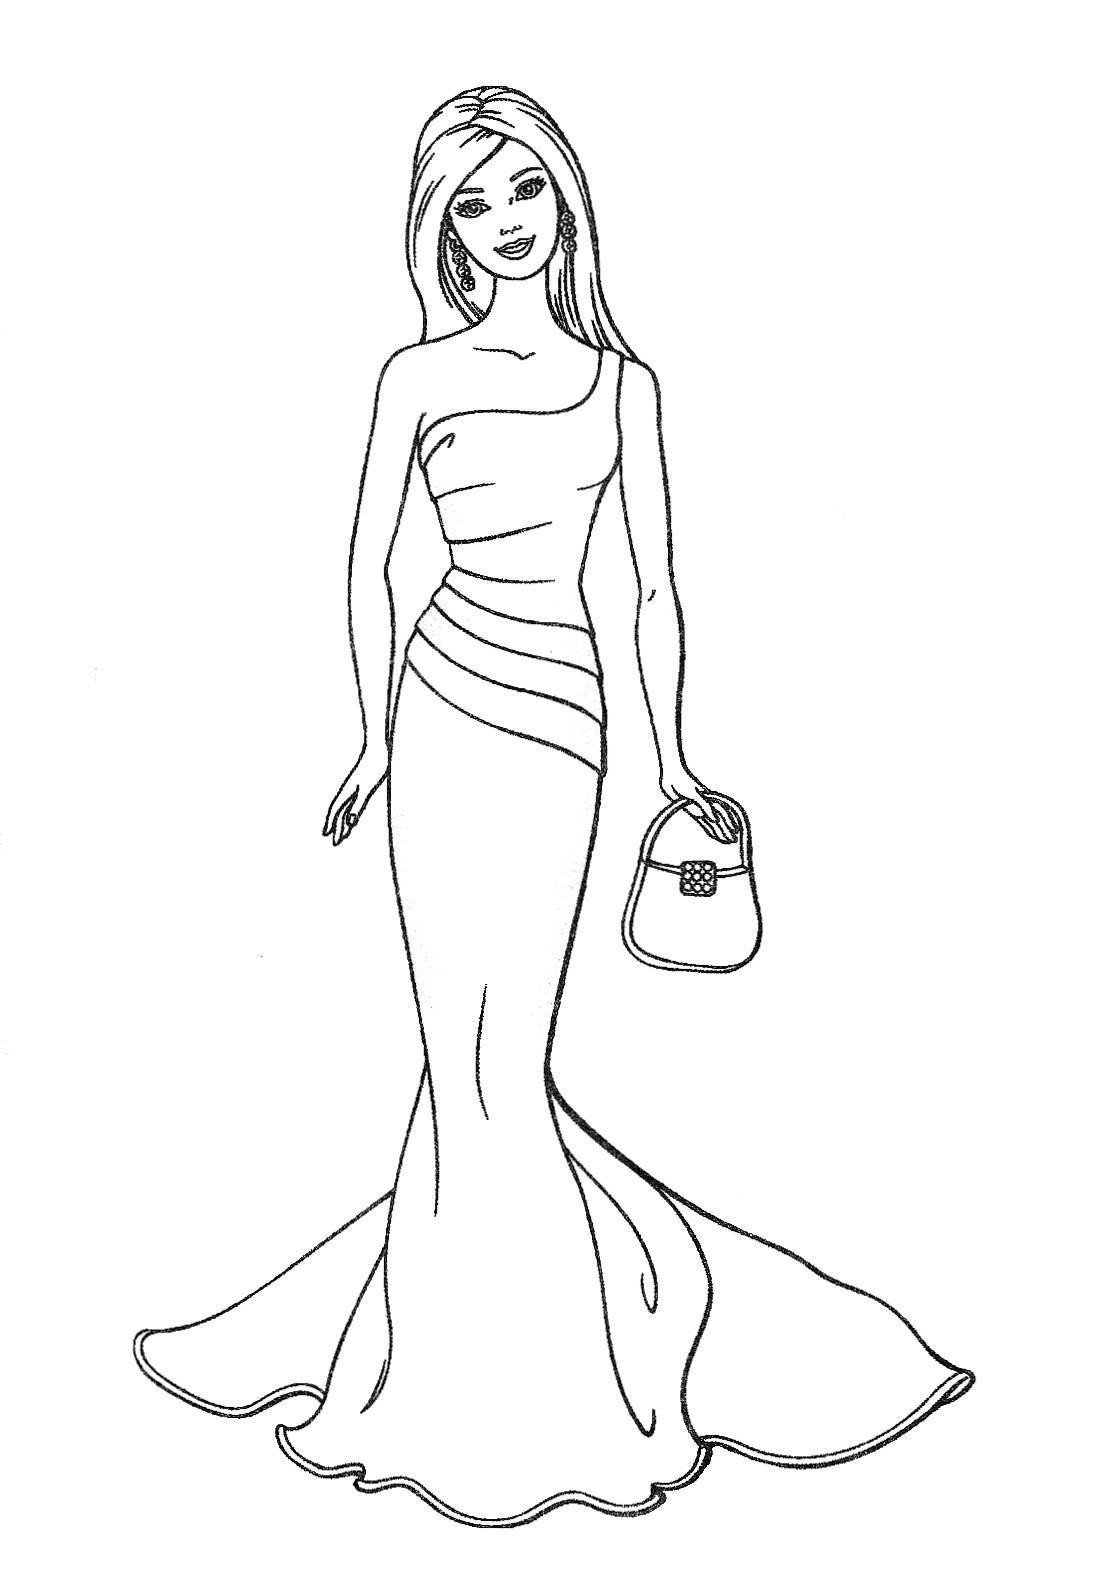 Barbie colouring in online free - Coloring For Kids Free Printable Barbie Coloring Pages In Minimalist Online Jpg